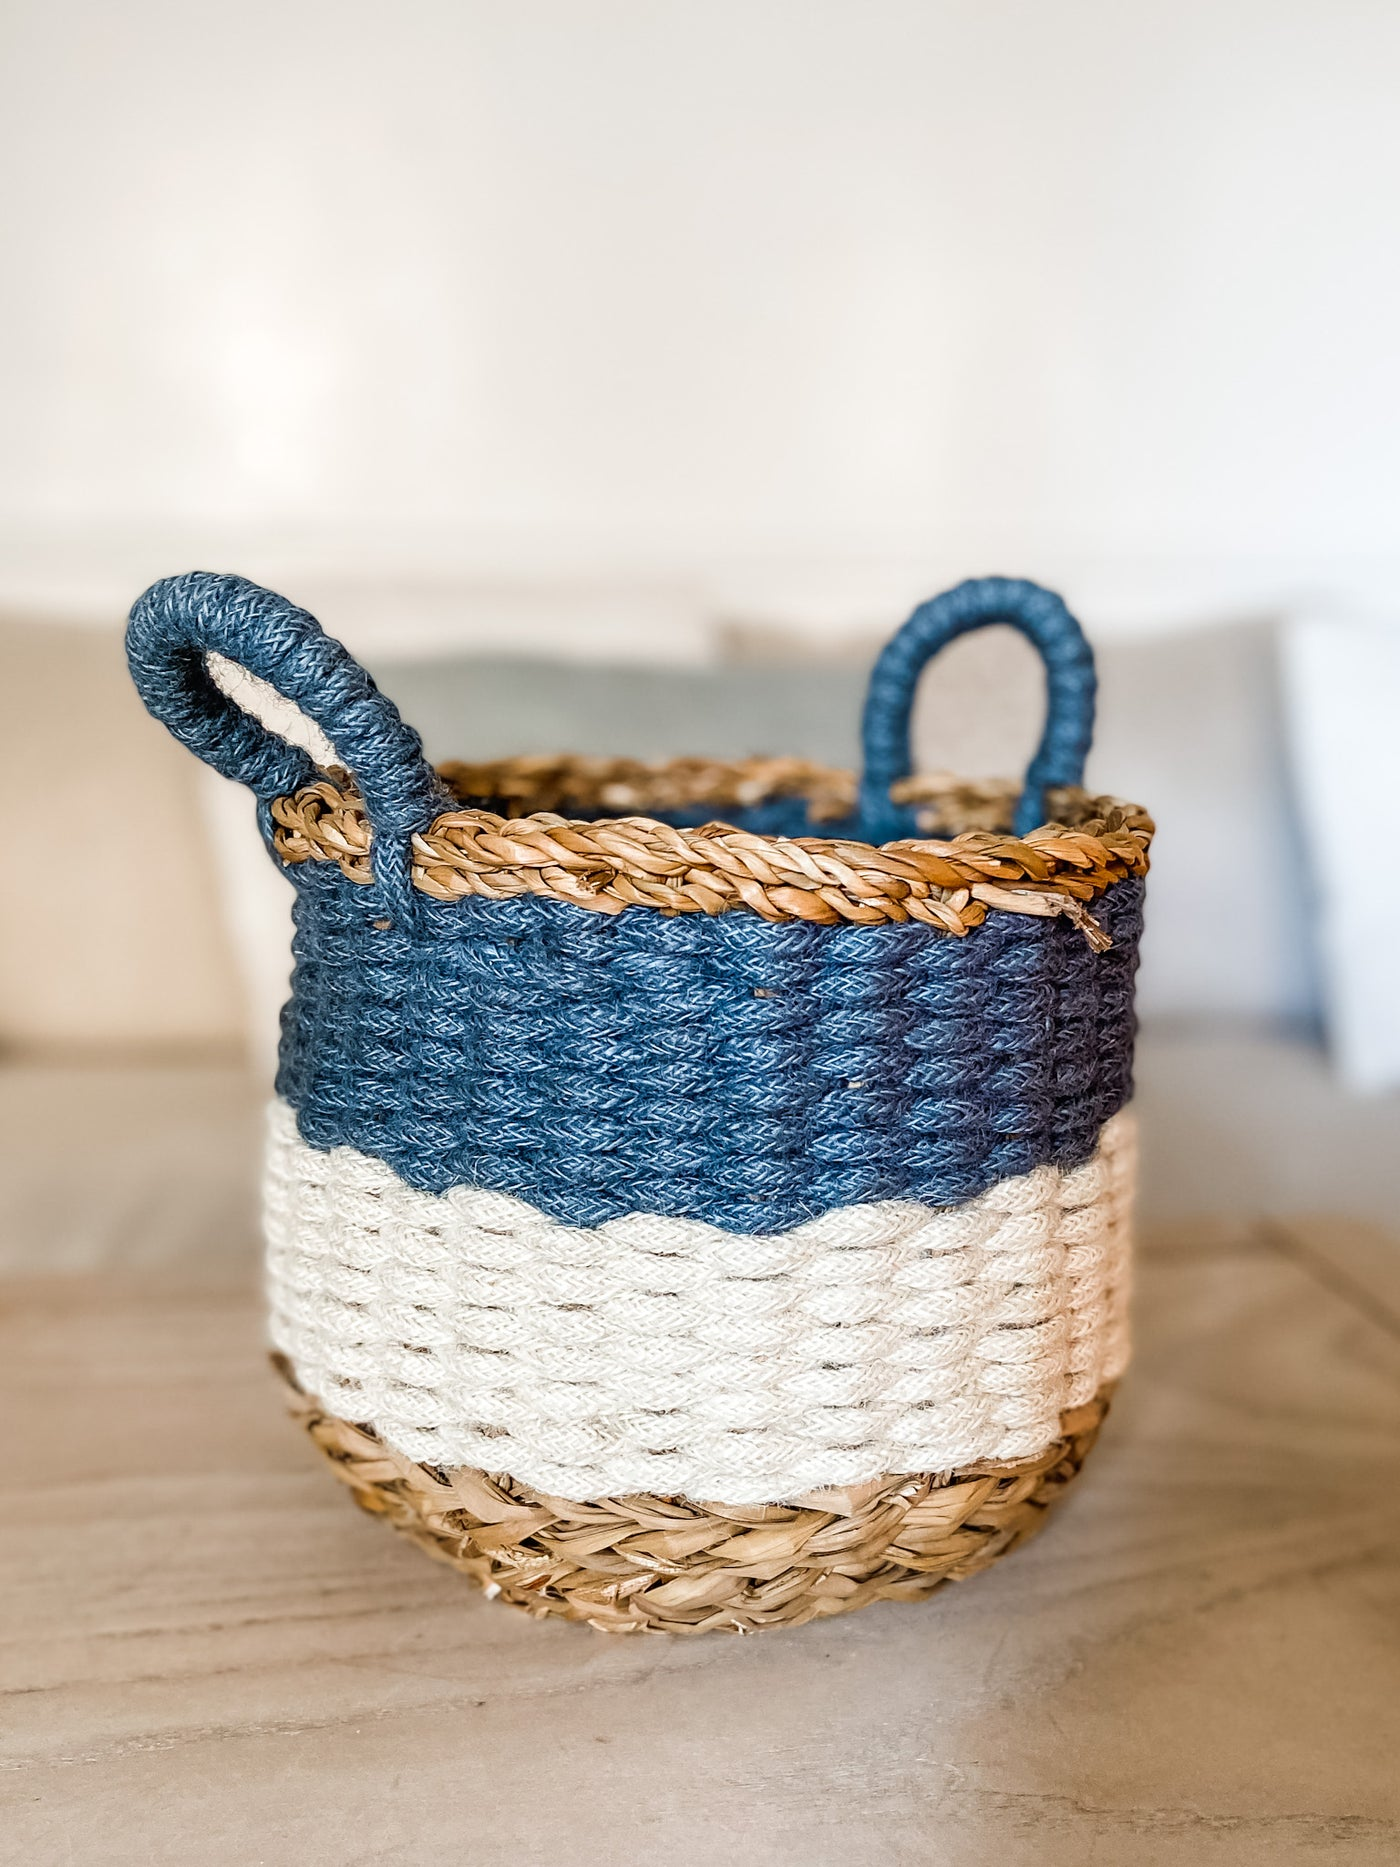 Ula Striped Baskets - Salt and Branch